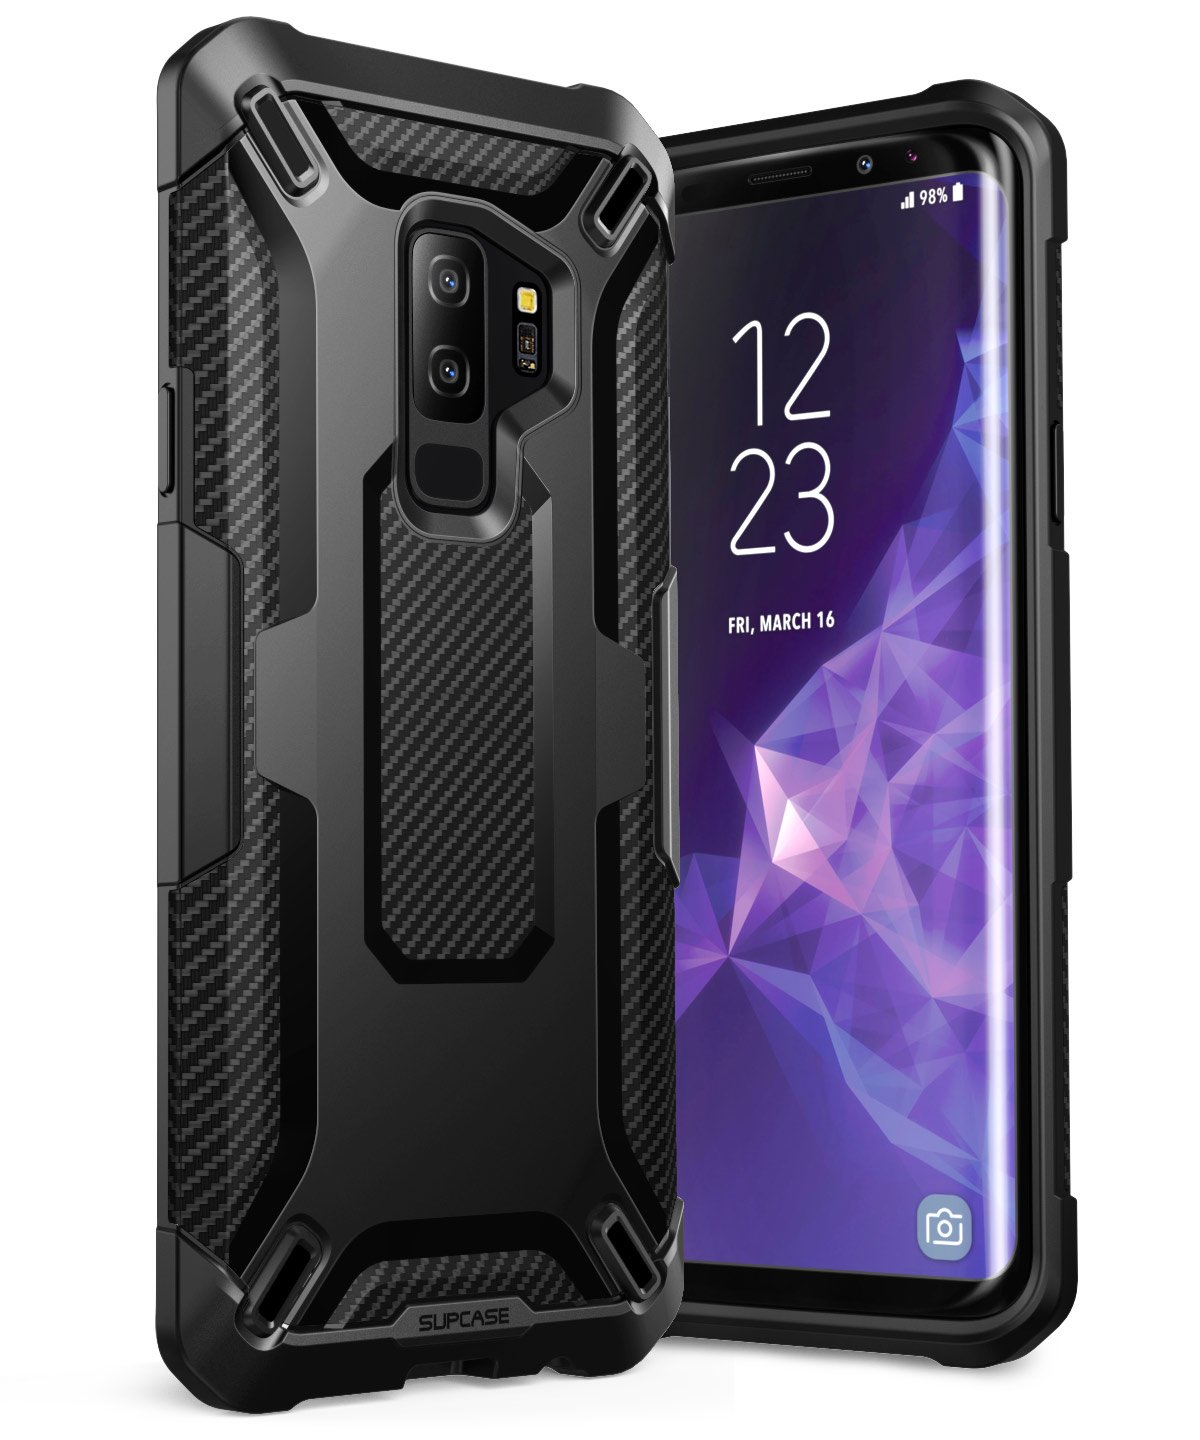 reputable site fe3f1 975d8 SupCase Unicorn Beetle Series Case Designed for Galaxy S9+ Plus, Premium  Hybrid Protective Clear Case for Samsung Galaxy S9+ Plus 2018 Release,  Retail ...